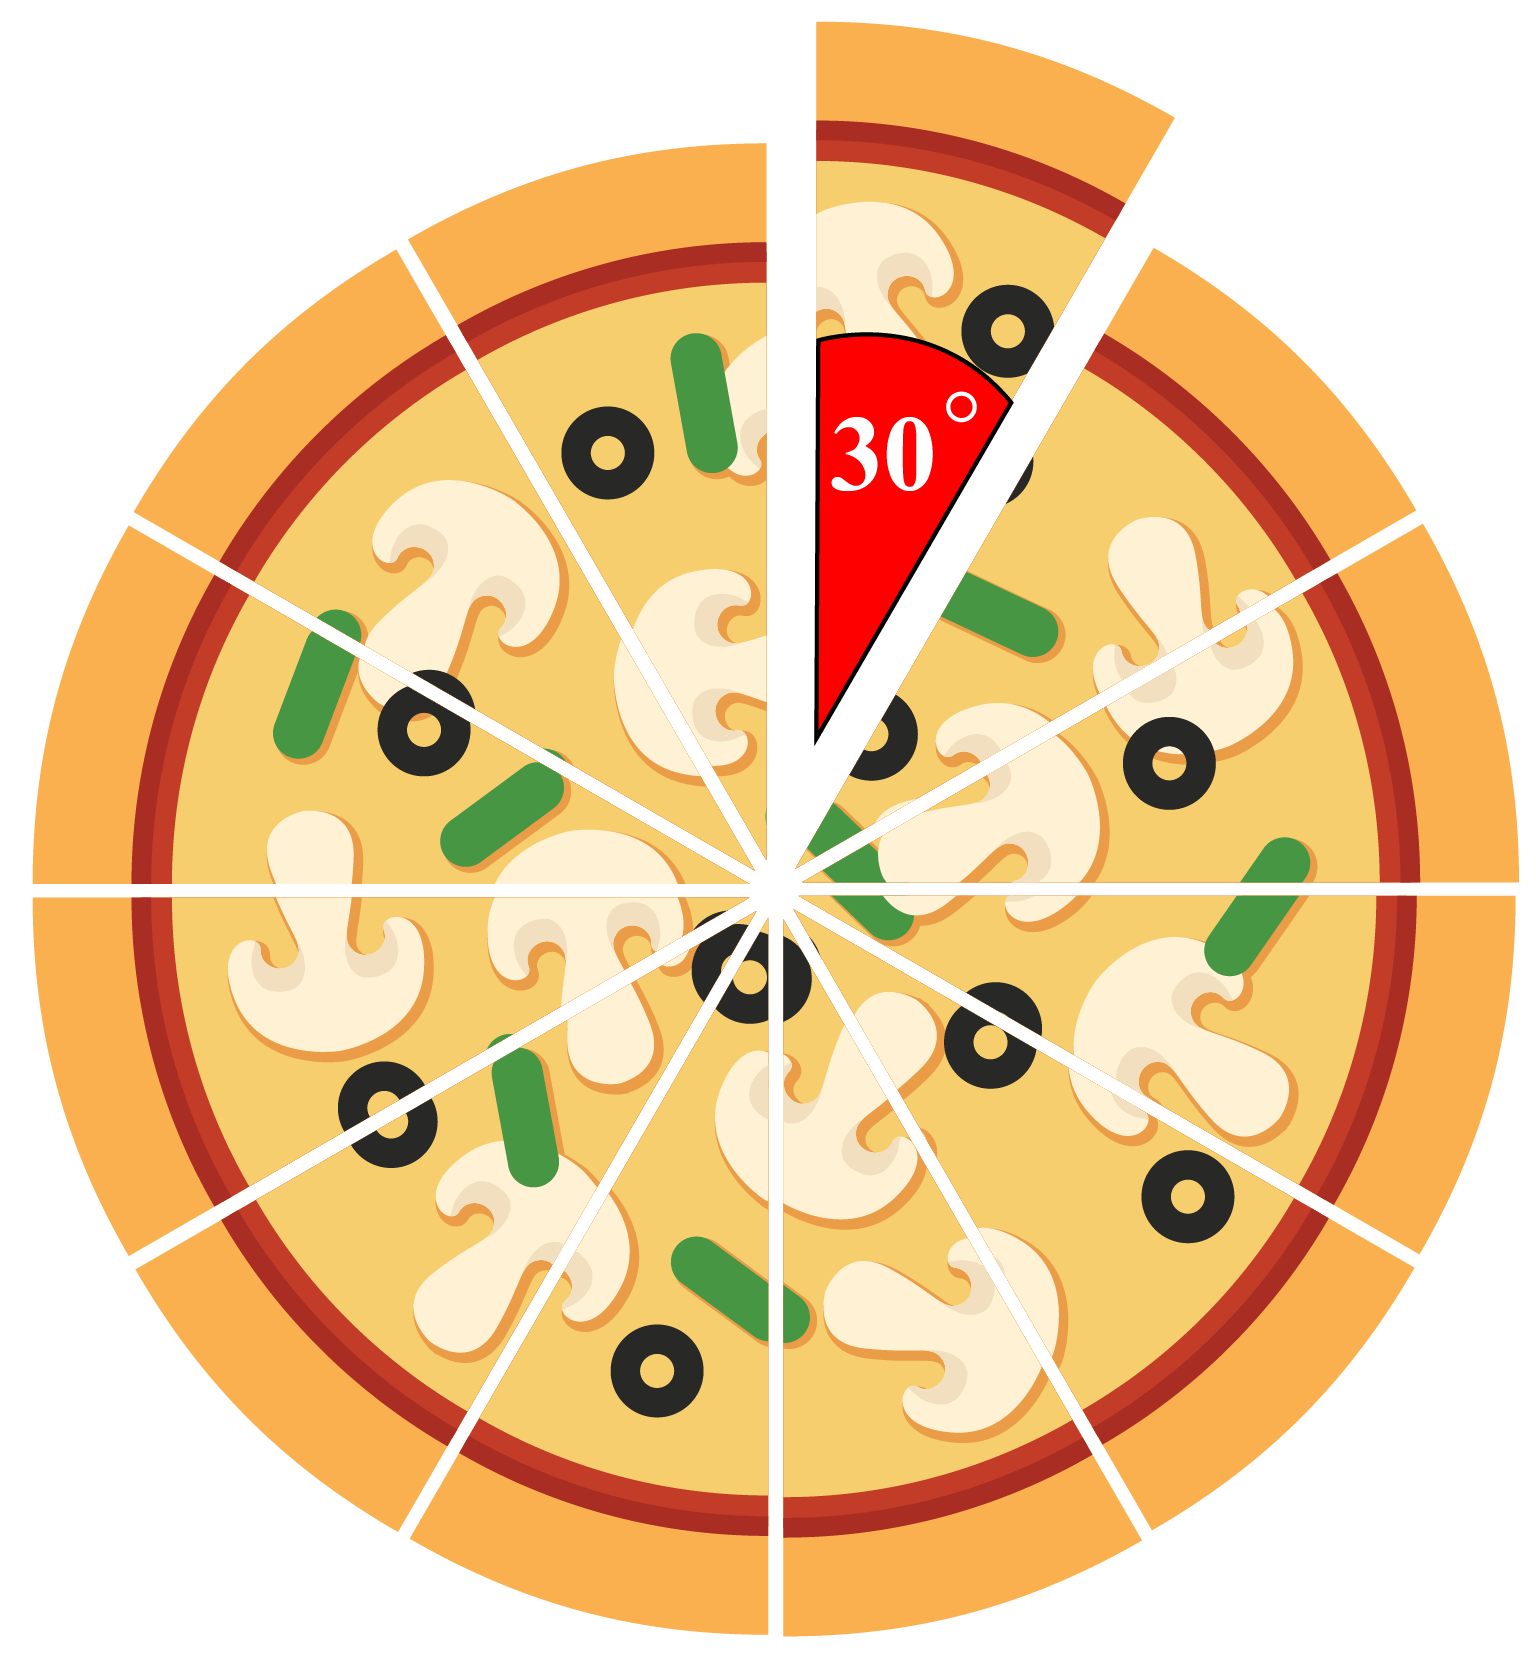 30-degree angle on a pizza slice